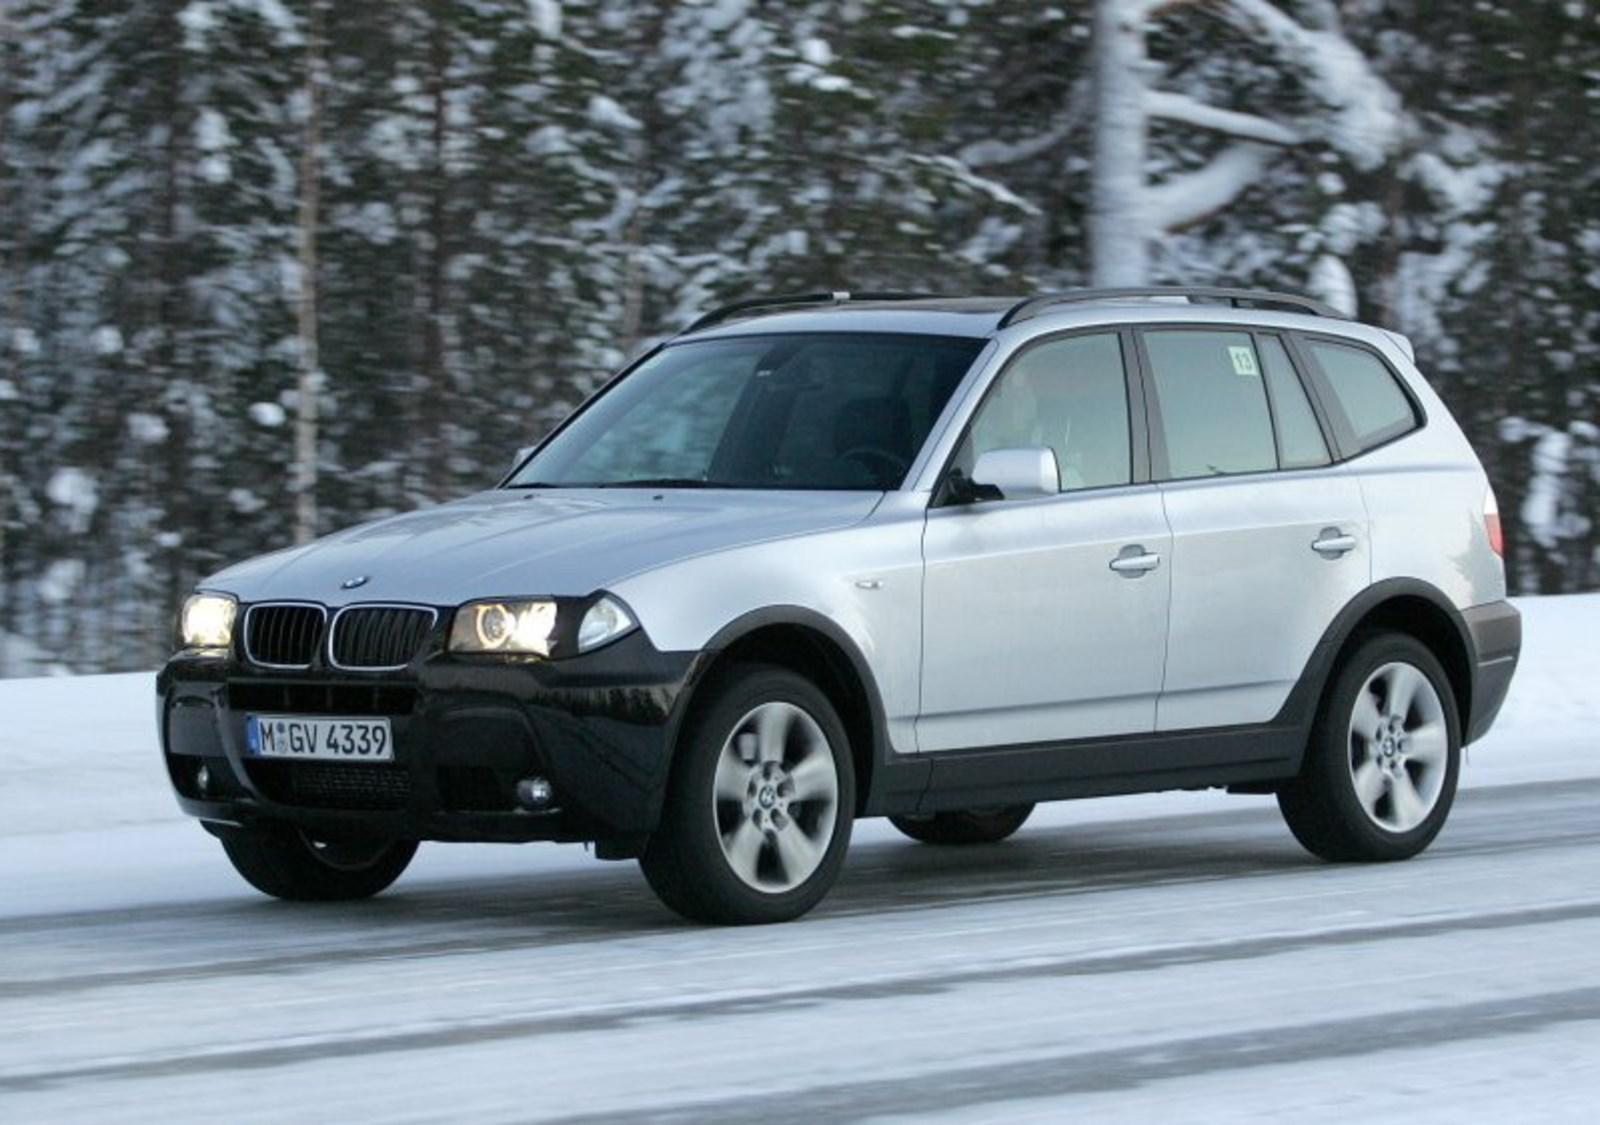 2007 bmw x3 review gallery top speed. Black Bedroom Furniture Sets. Home Design Ideas